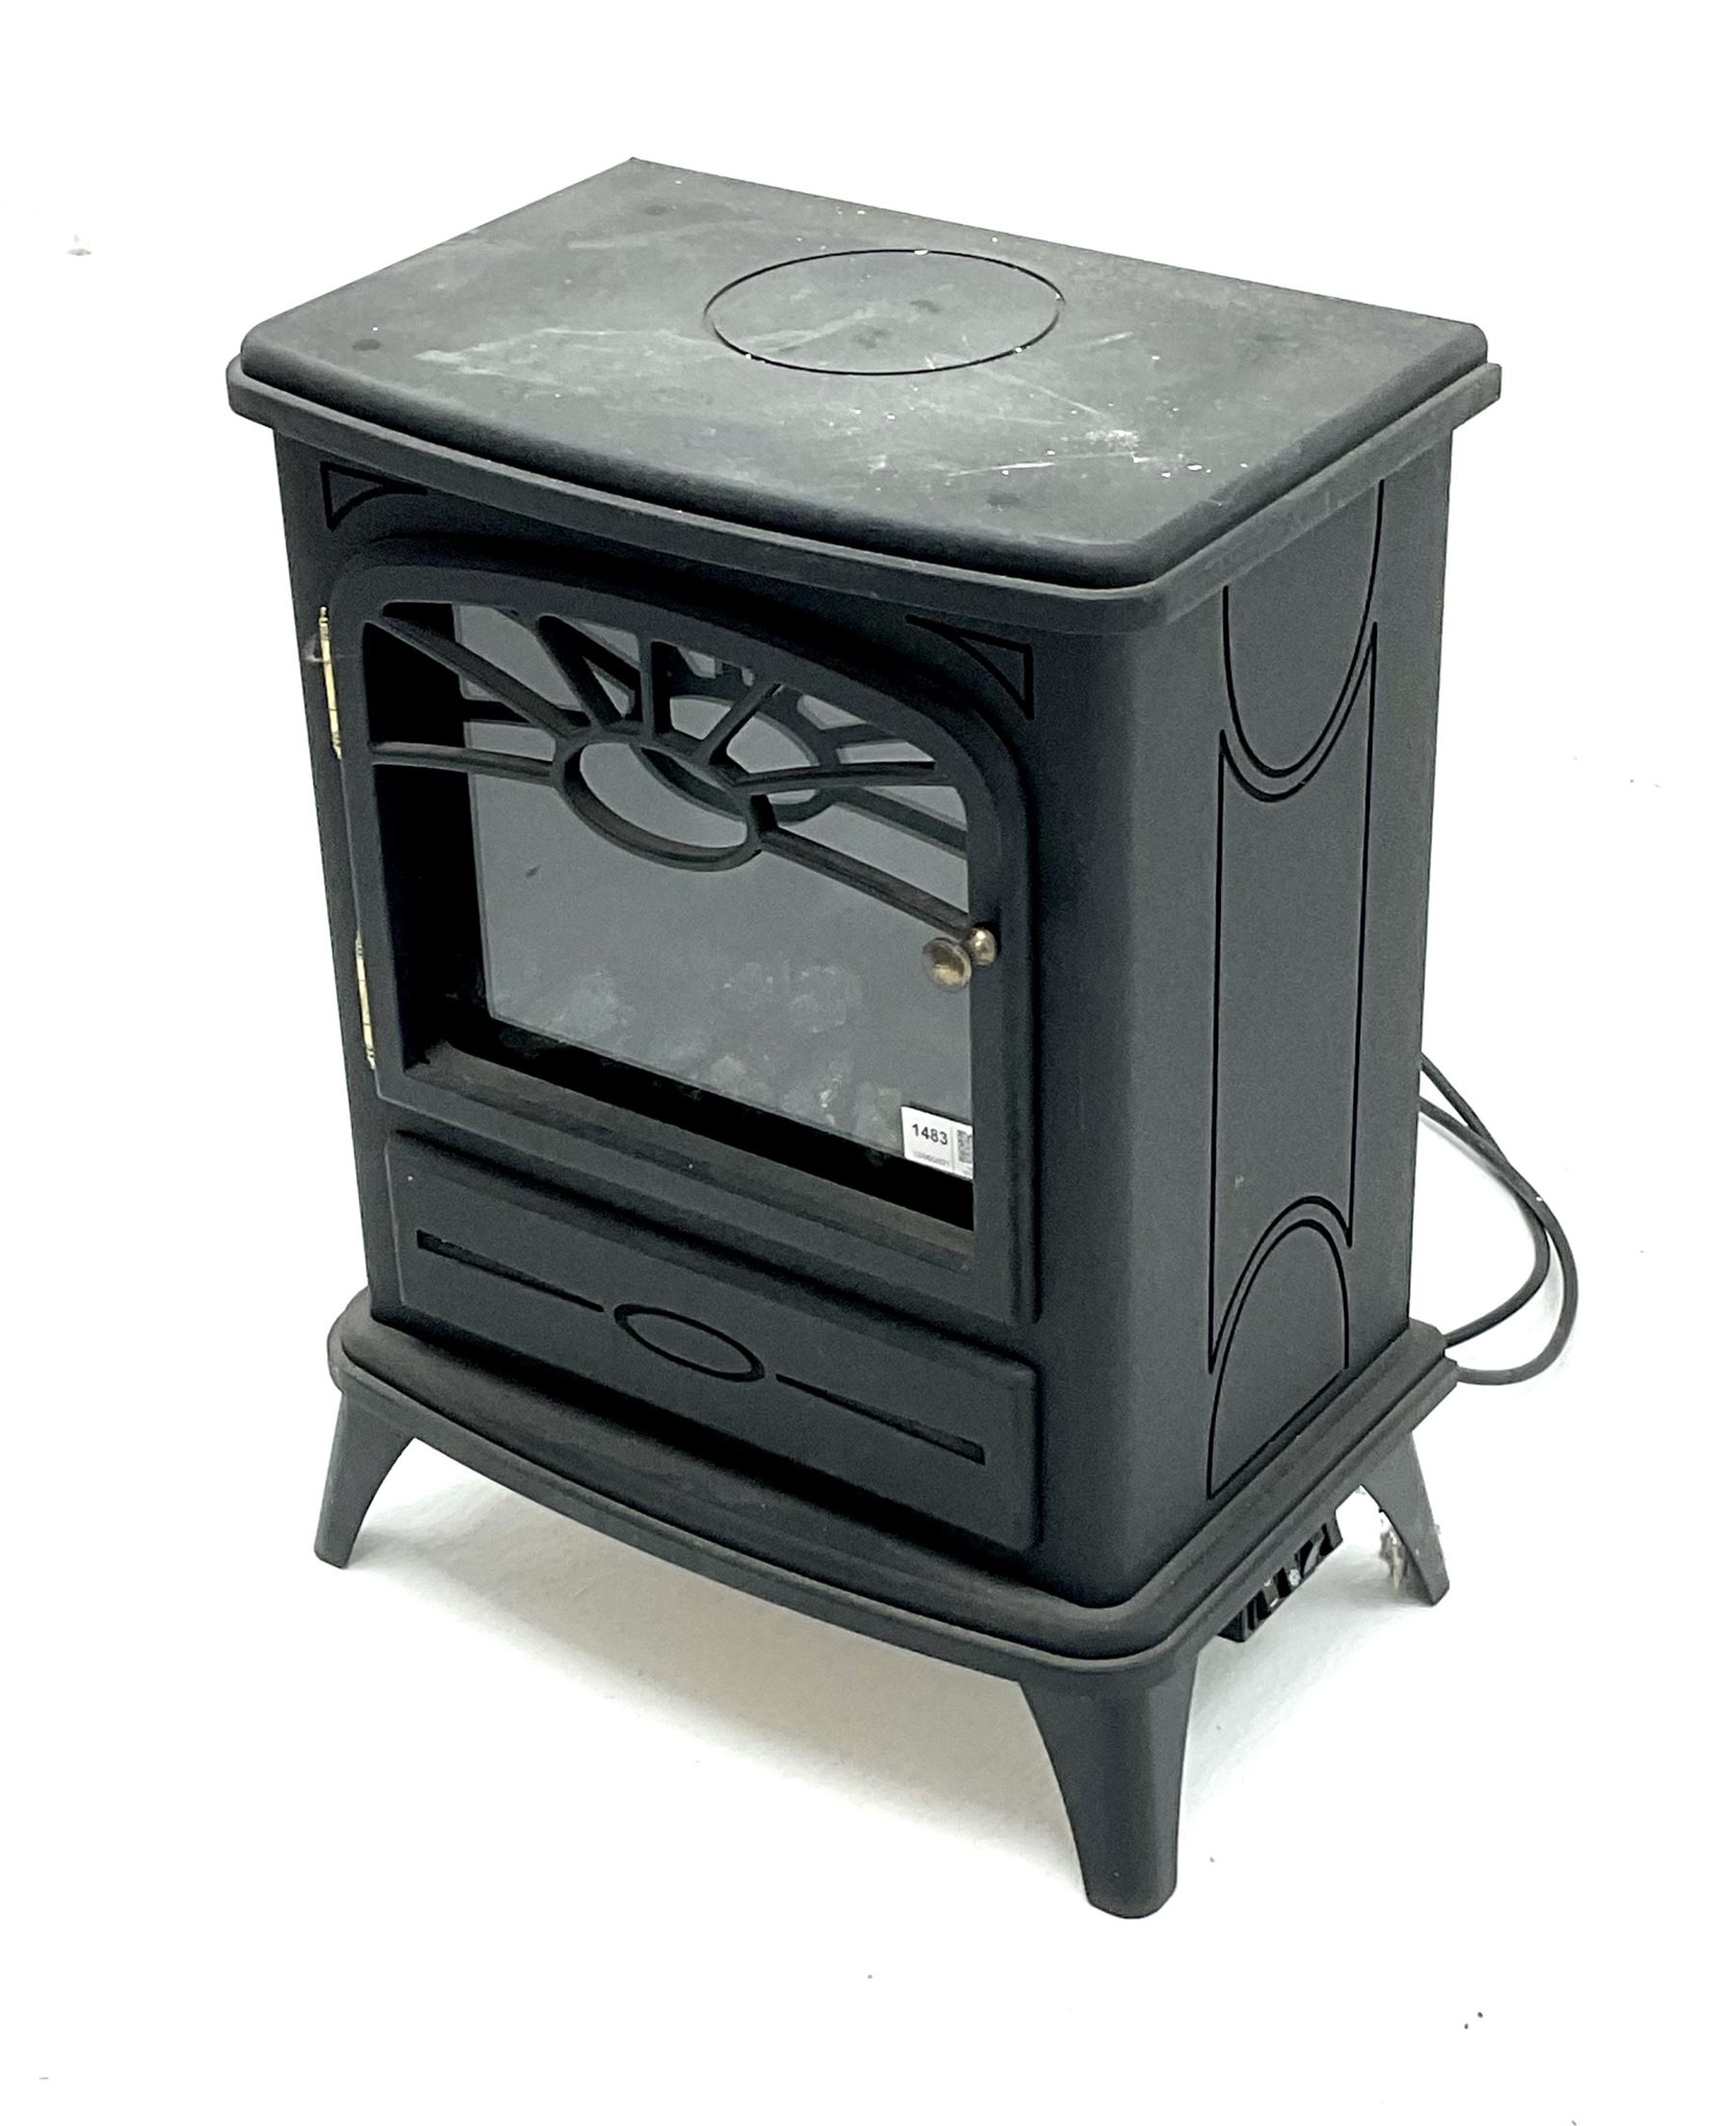 Focal point fires - electric stove - Image 2 of 2